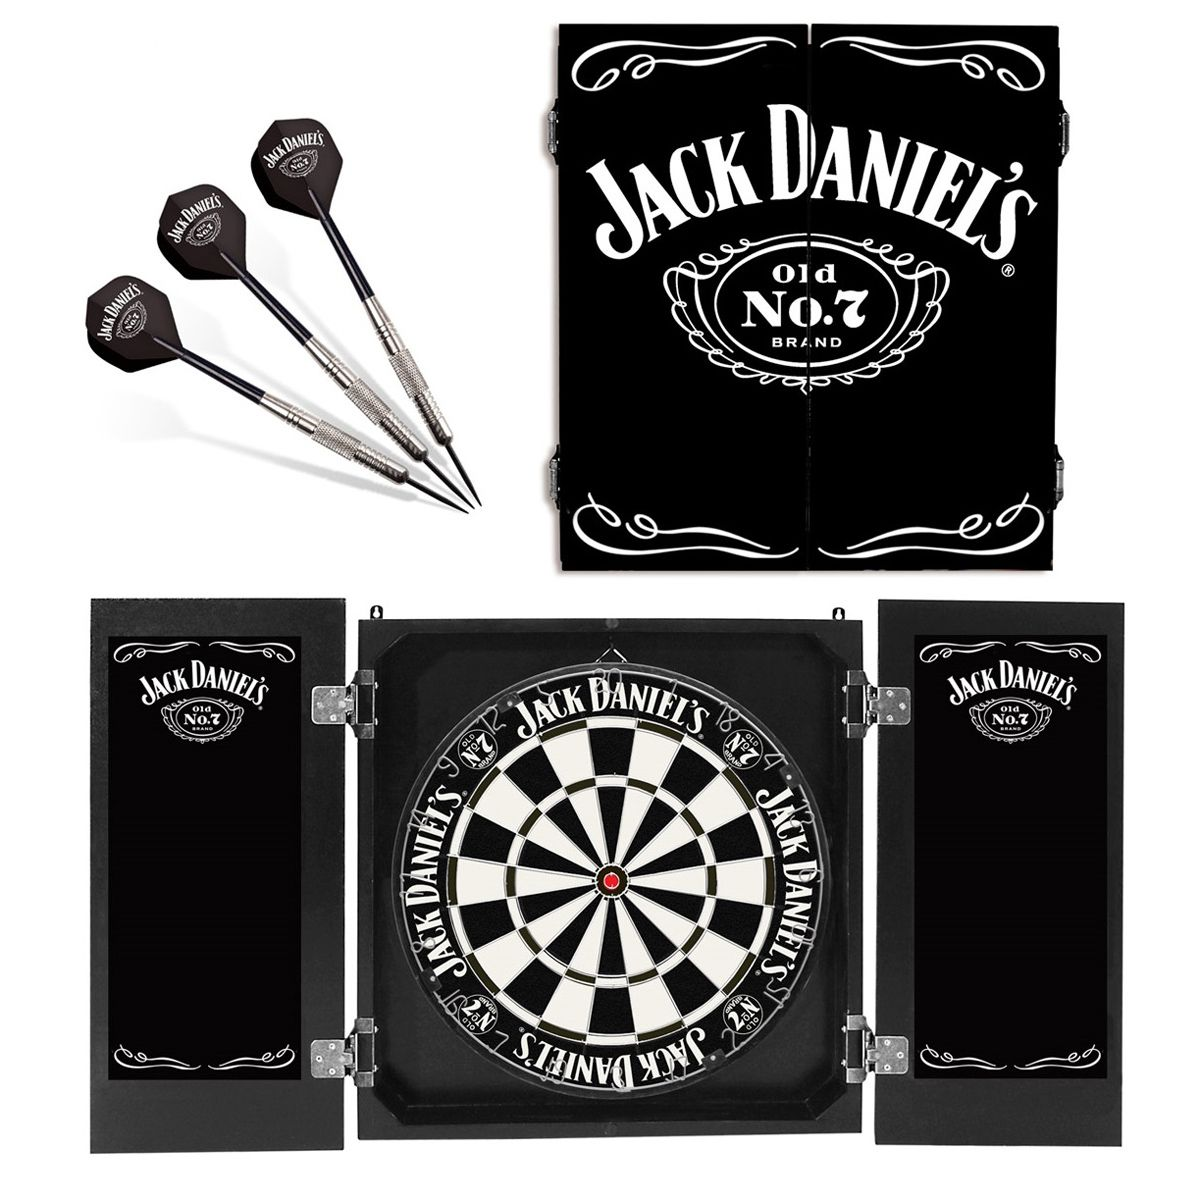 Genuine Jack Danielu0027s Dart Board And Cabinet. Old No. 7. Genuine Official  Licensed